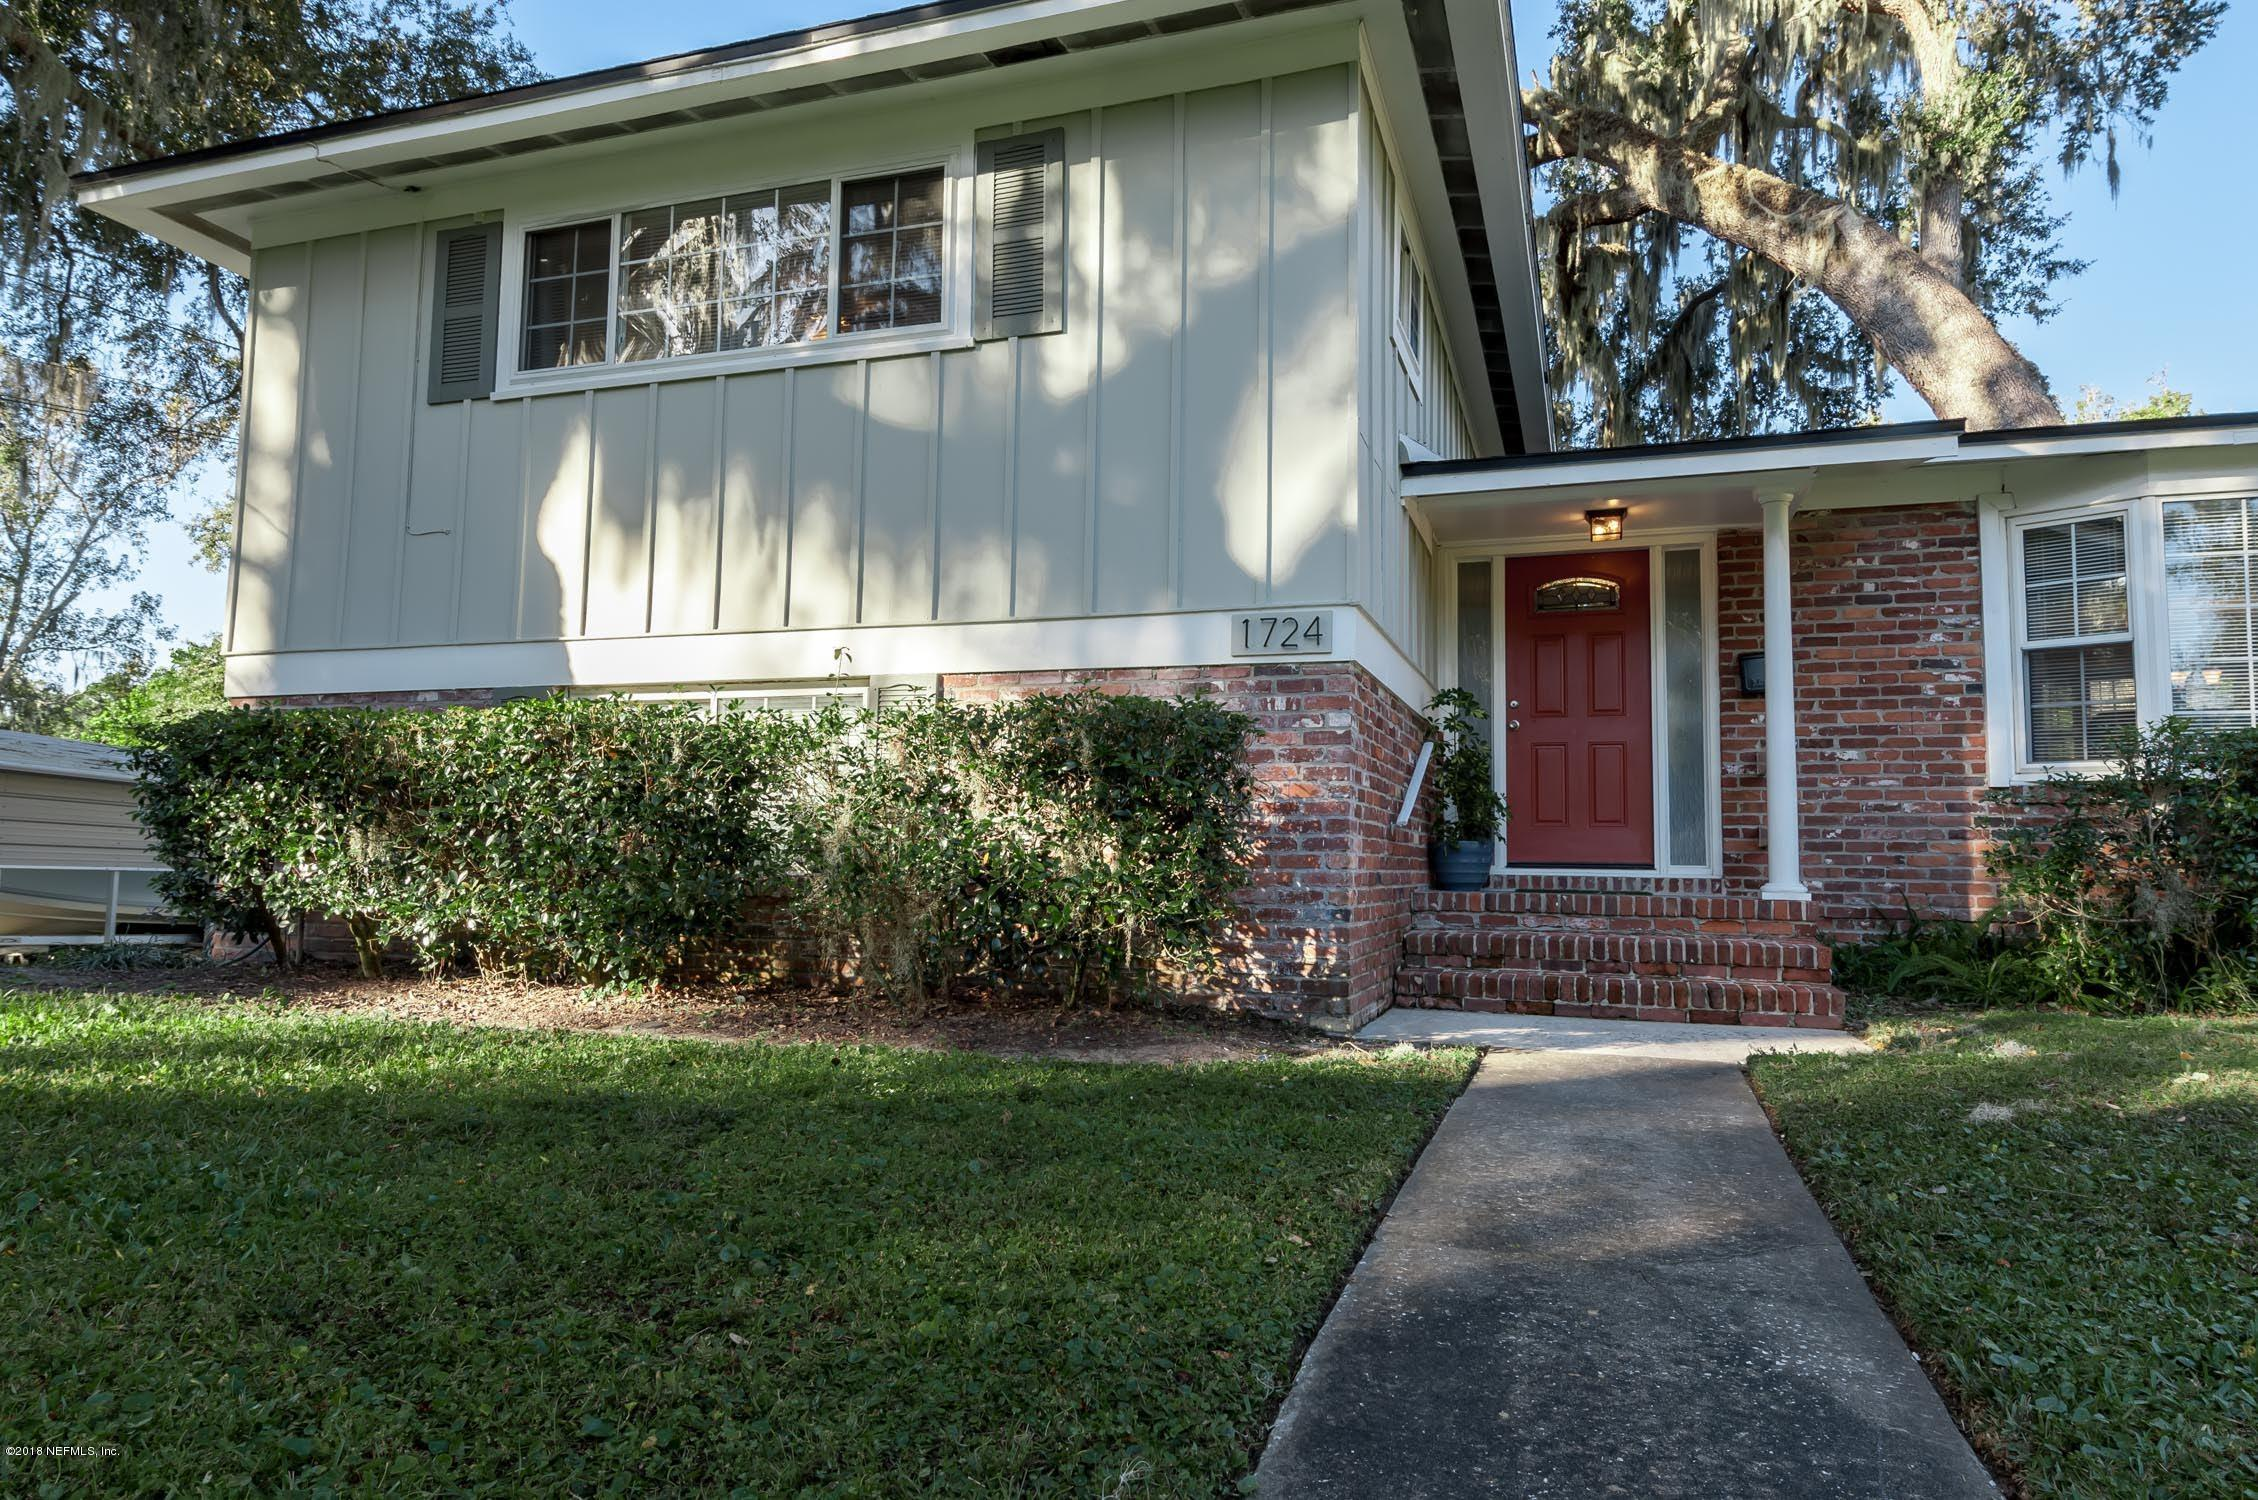 1724 ORMOND, JACKSONVILLE, FLORIDA 32225, 3 Bedrooms Bedrooms, ,2 BathroomsBathrooms,Residential - single family,For sale,ORMOND,965133